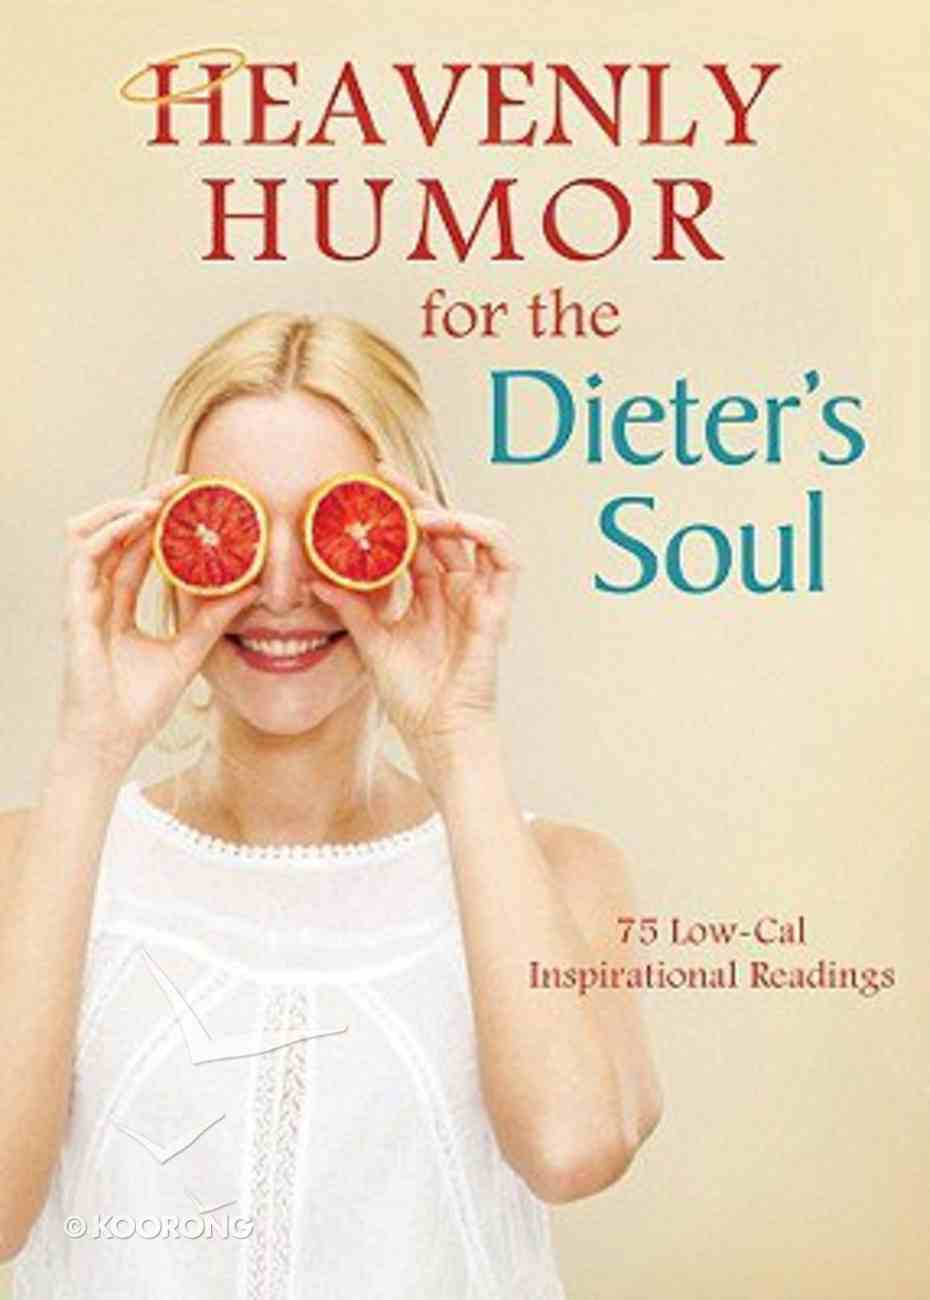 Heavenly Humour For the Dieter's Soul Paperback